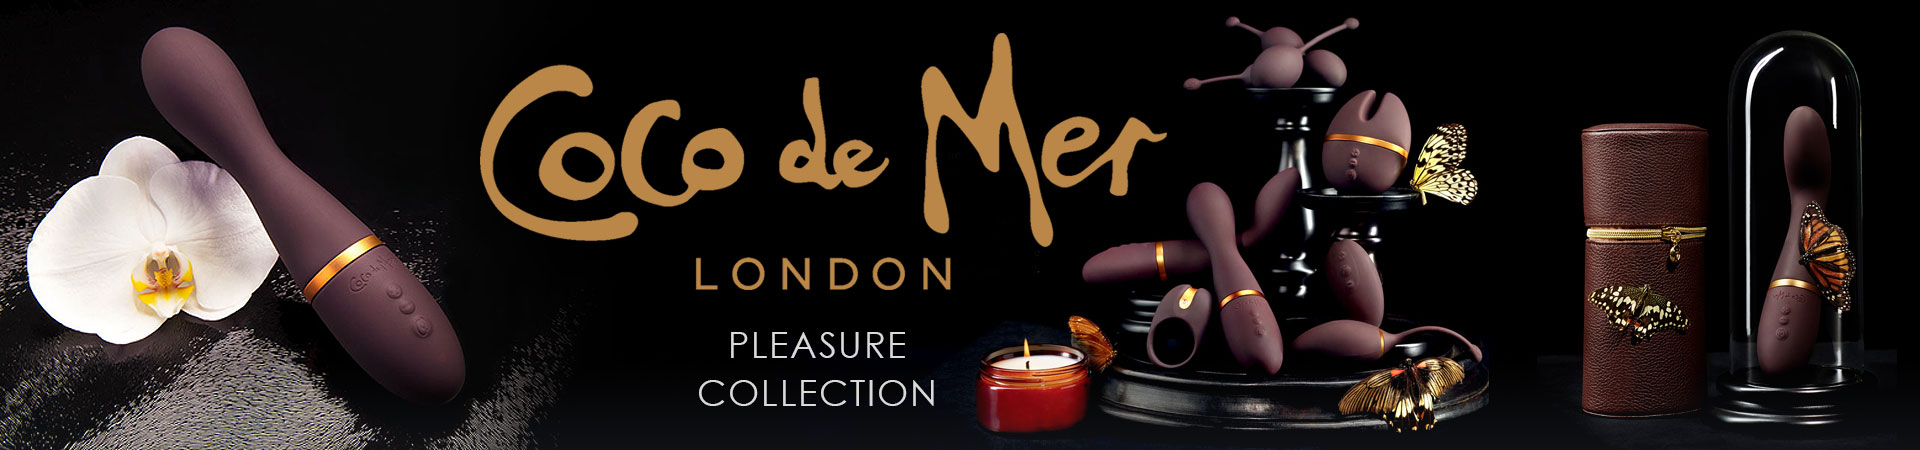 Shevibe Invites You To Discover Coco De Mer. Luxurious, Seductive Pleasure Toys To Fuel Your Erotic Imagination.